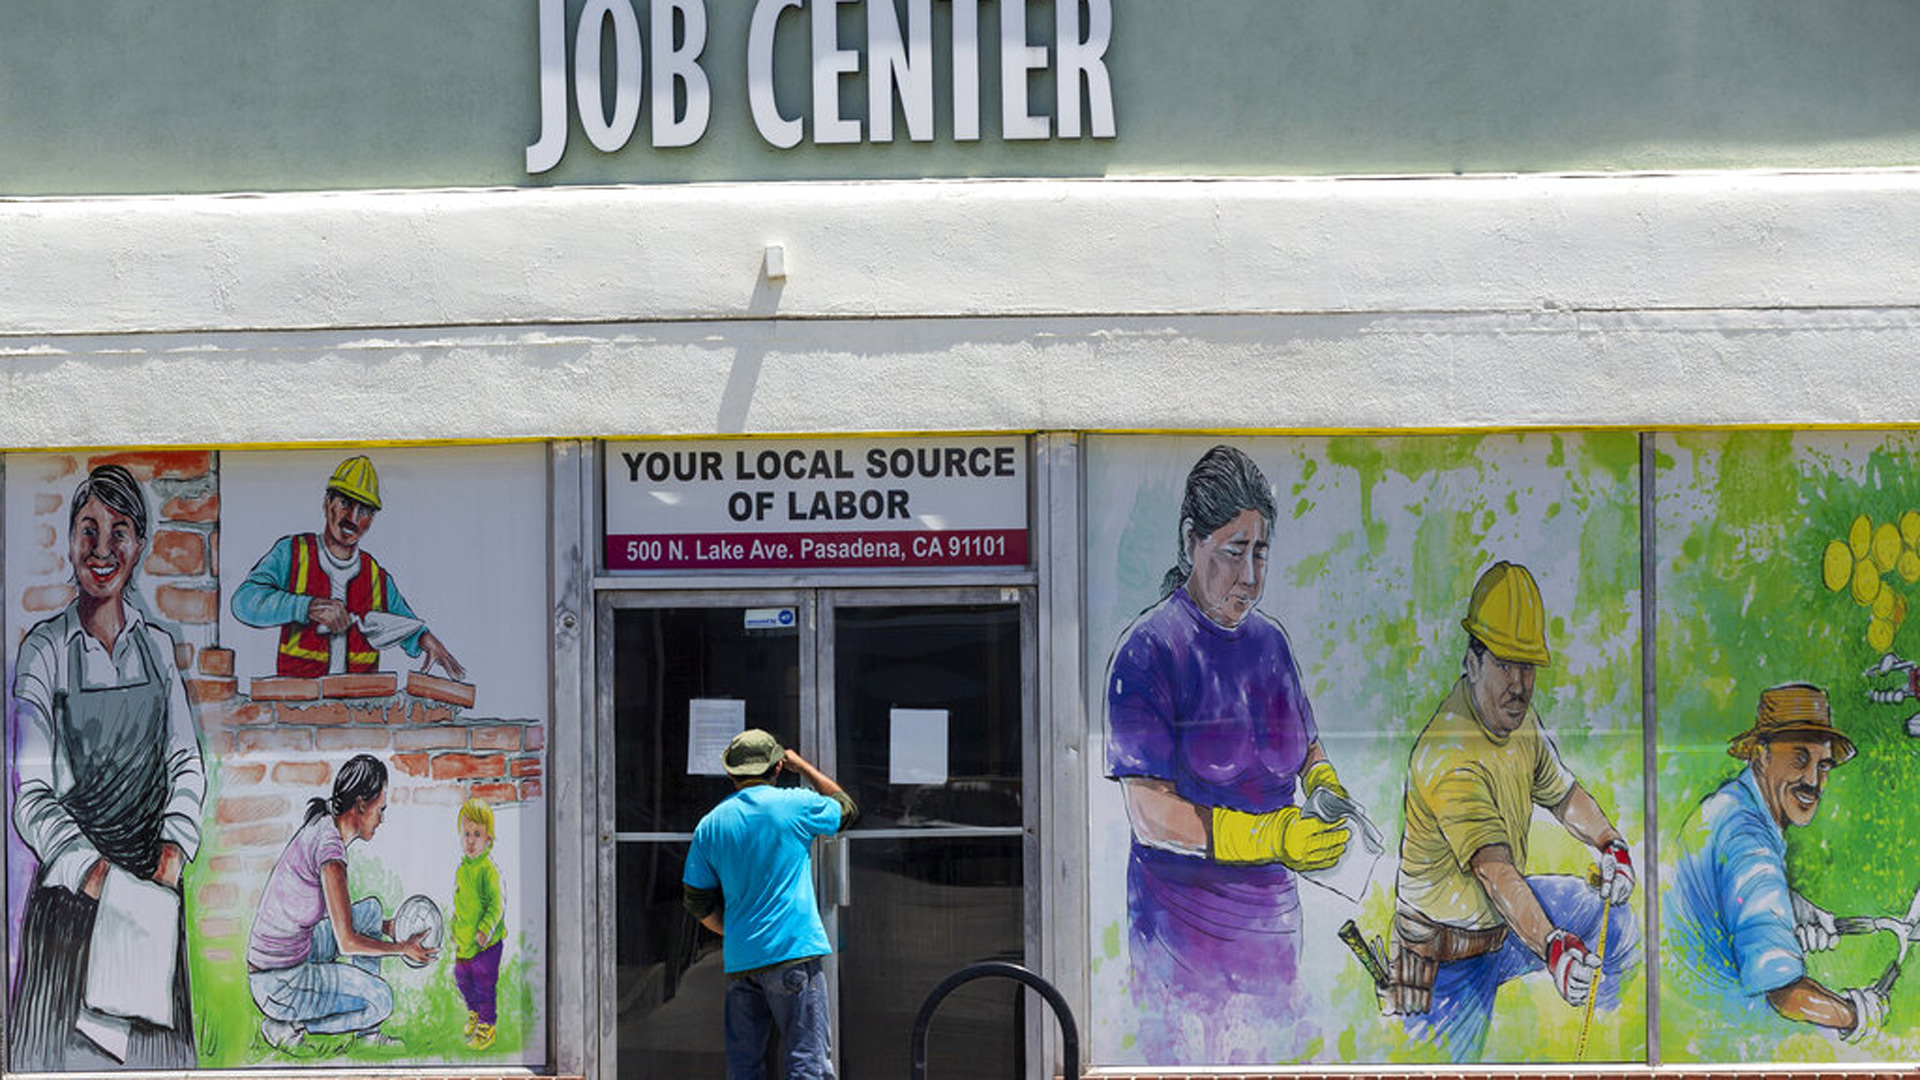 In this May 7, 2020, photo, a person looks inside the closed doors of the Pasadena Community Job Center in Pasadena during the coronavirus outbreak. (AP Photo/Damian Dovarganes, File)